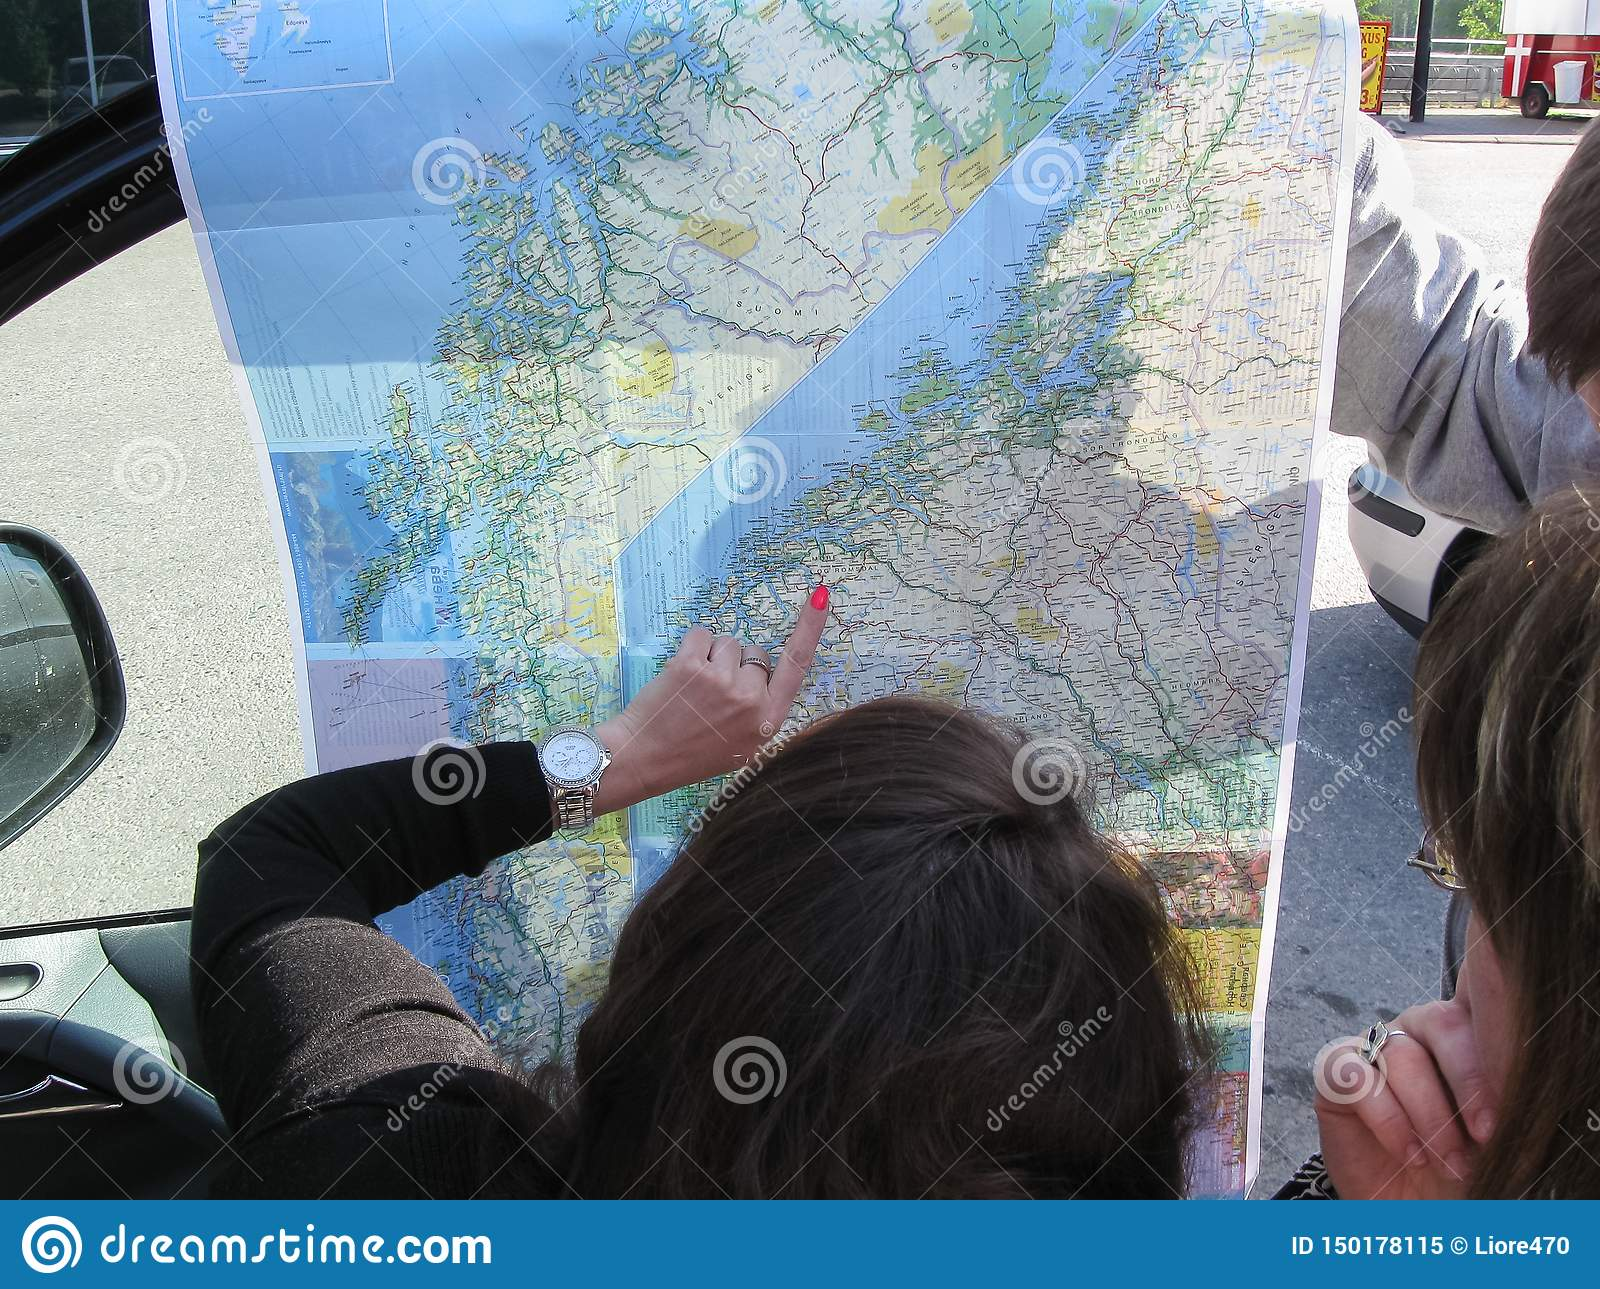 Helsinki, Finland - 11.06.2012: tourists view the map and make up the route